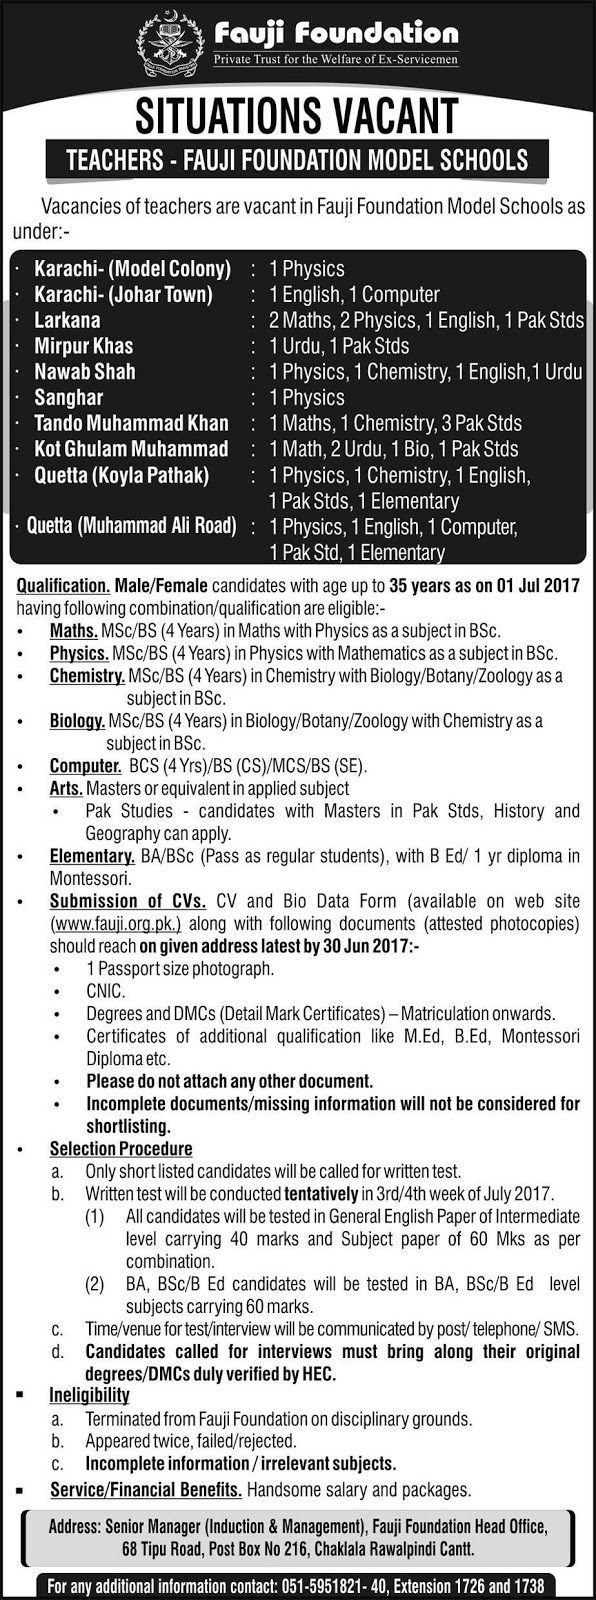 Teachers Jobs in Fauji Foundation Schools in Different Cities for All Subjects